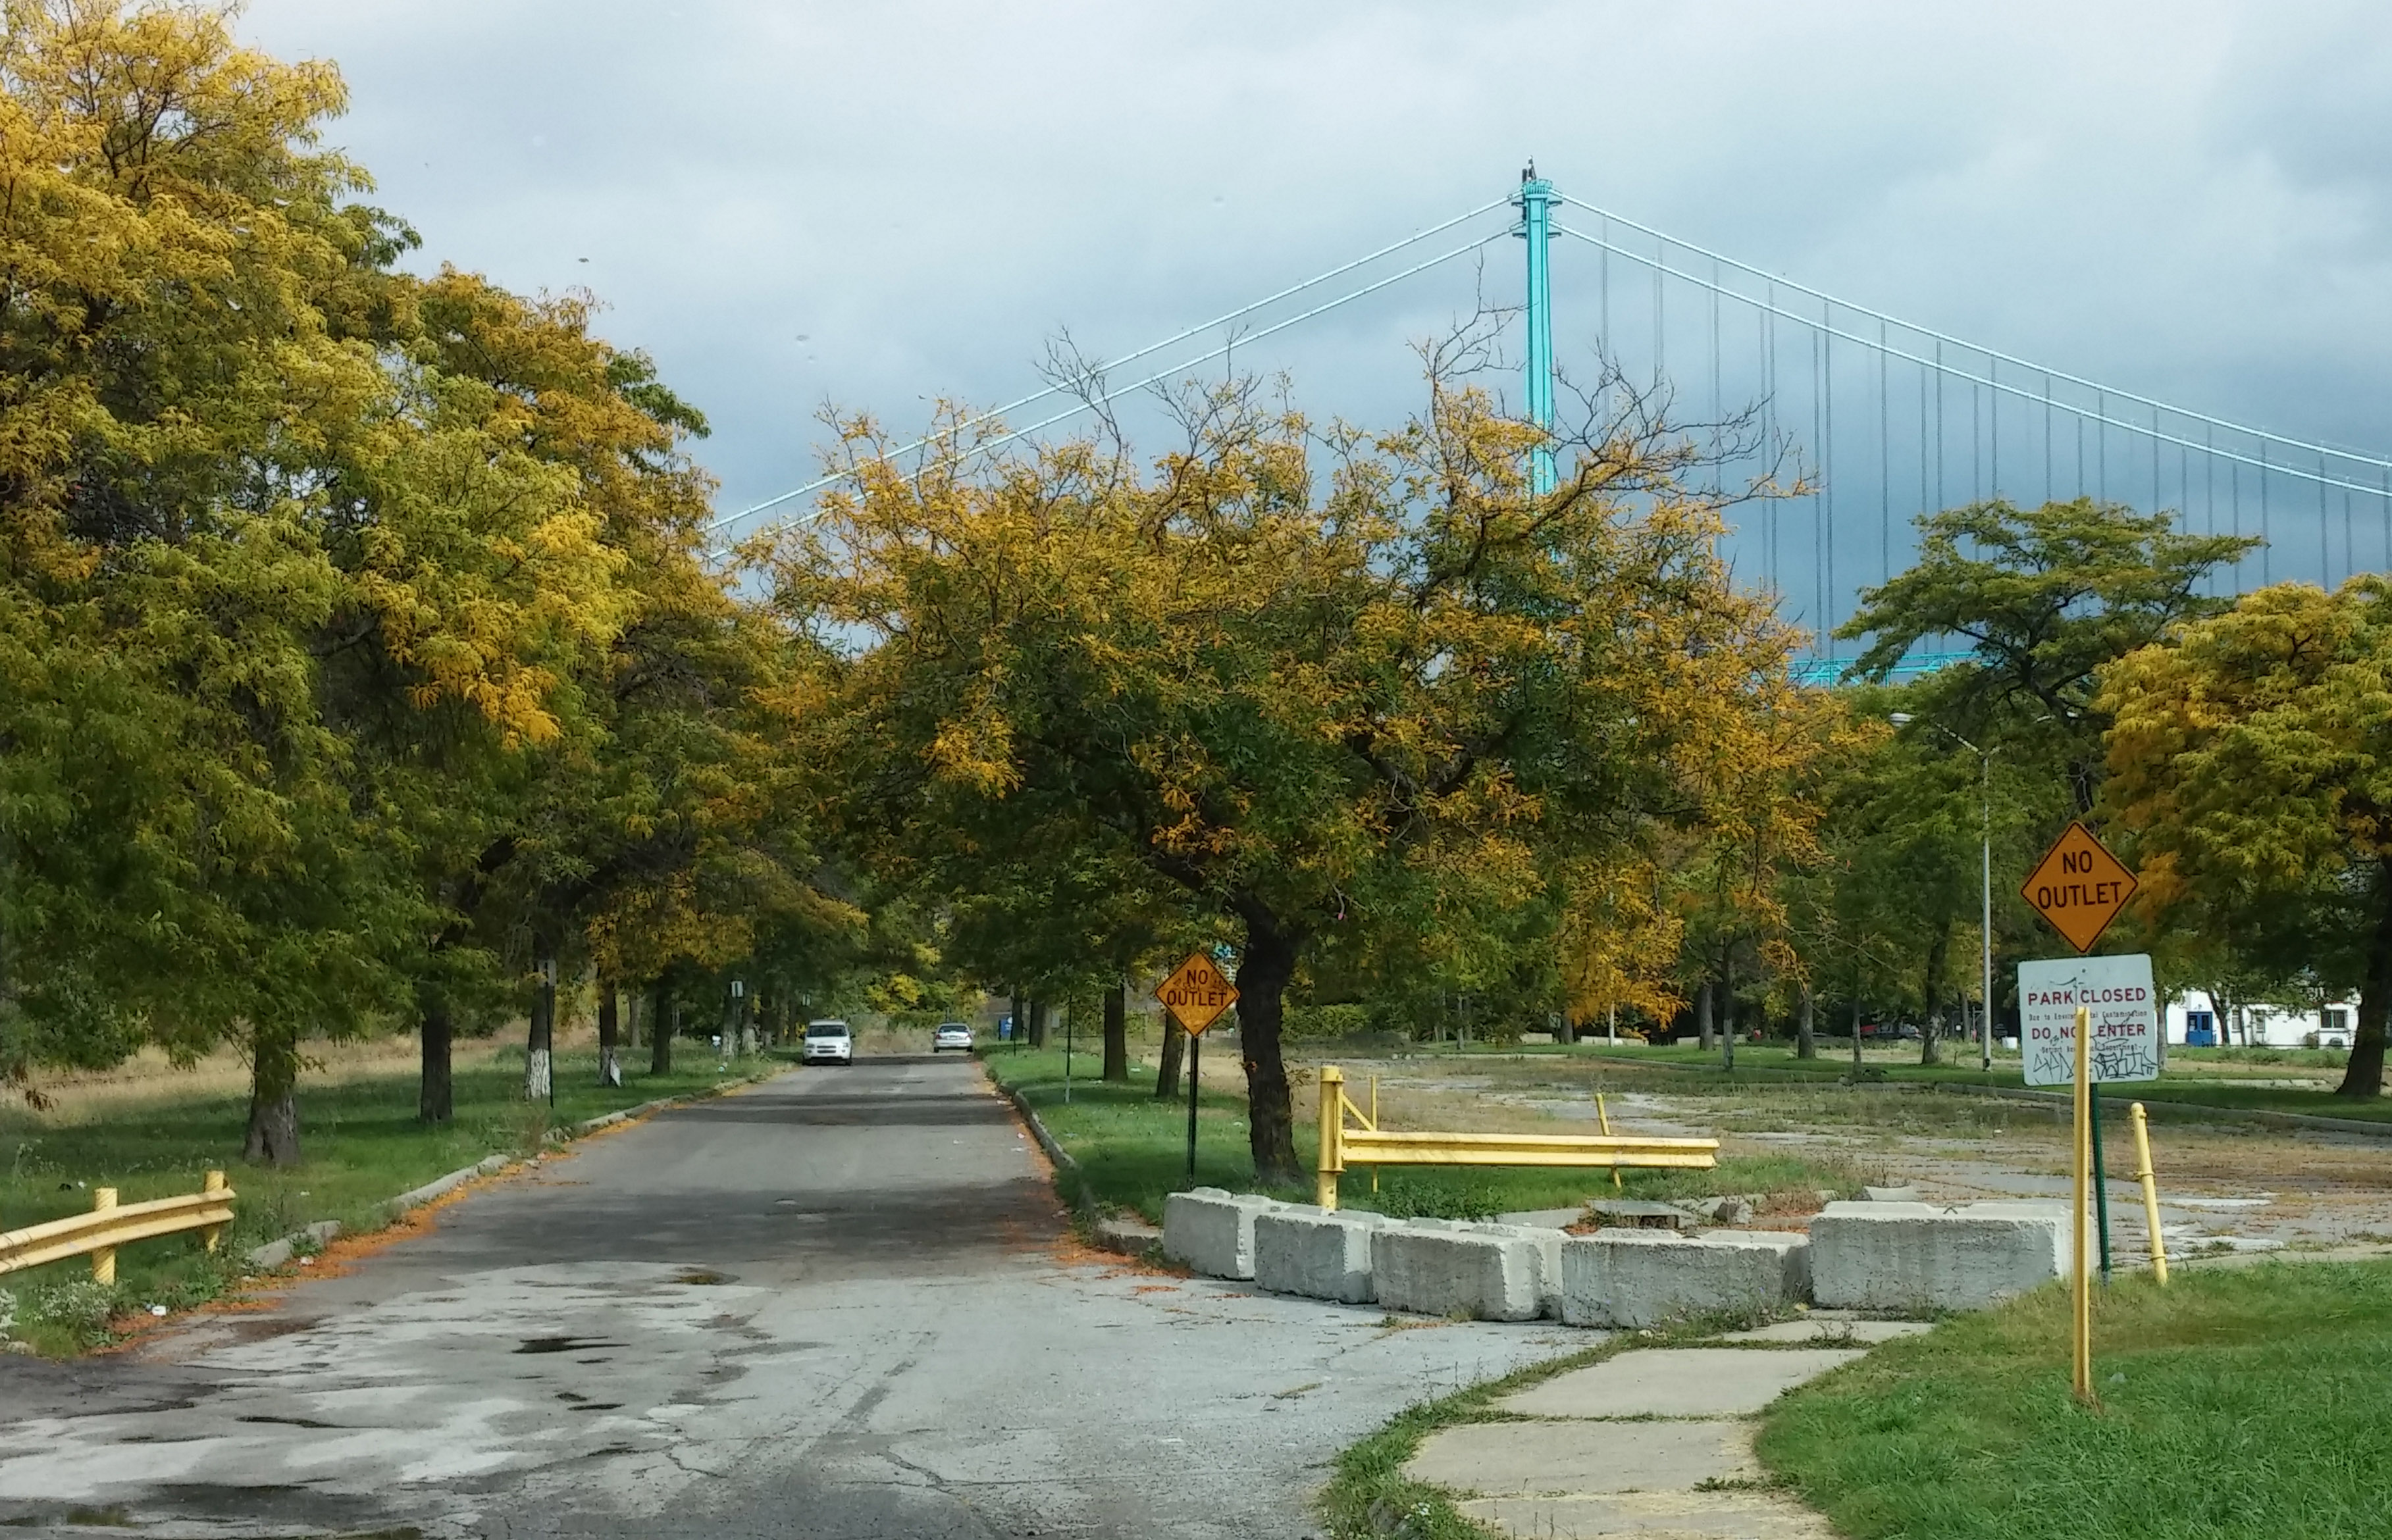 View of the Ambassador Bridge from the roadside adjacent to Riverside Park. The park is currently closed due to environmental contamination.